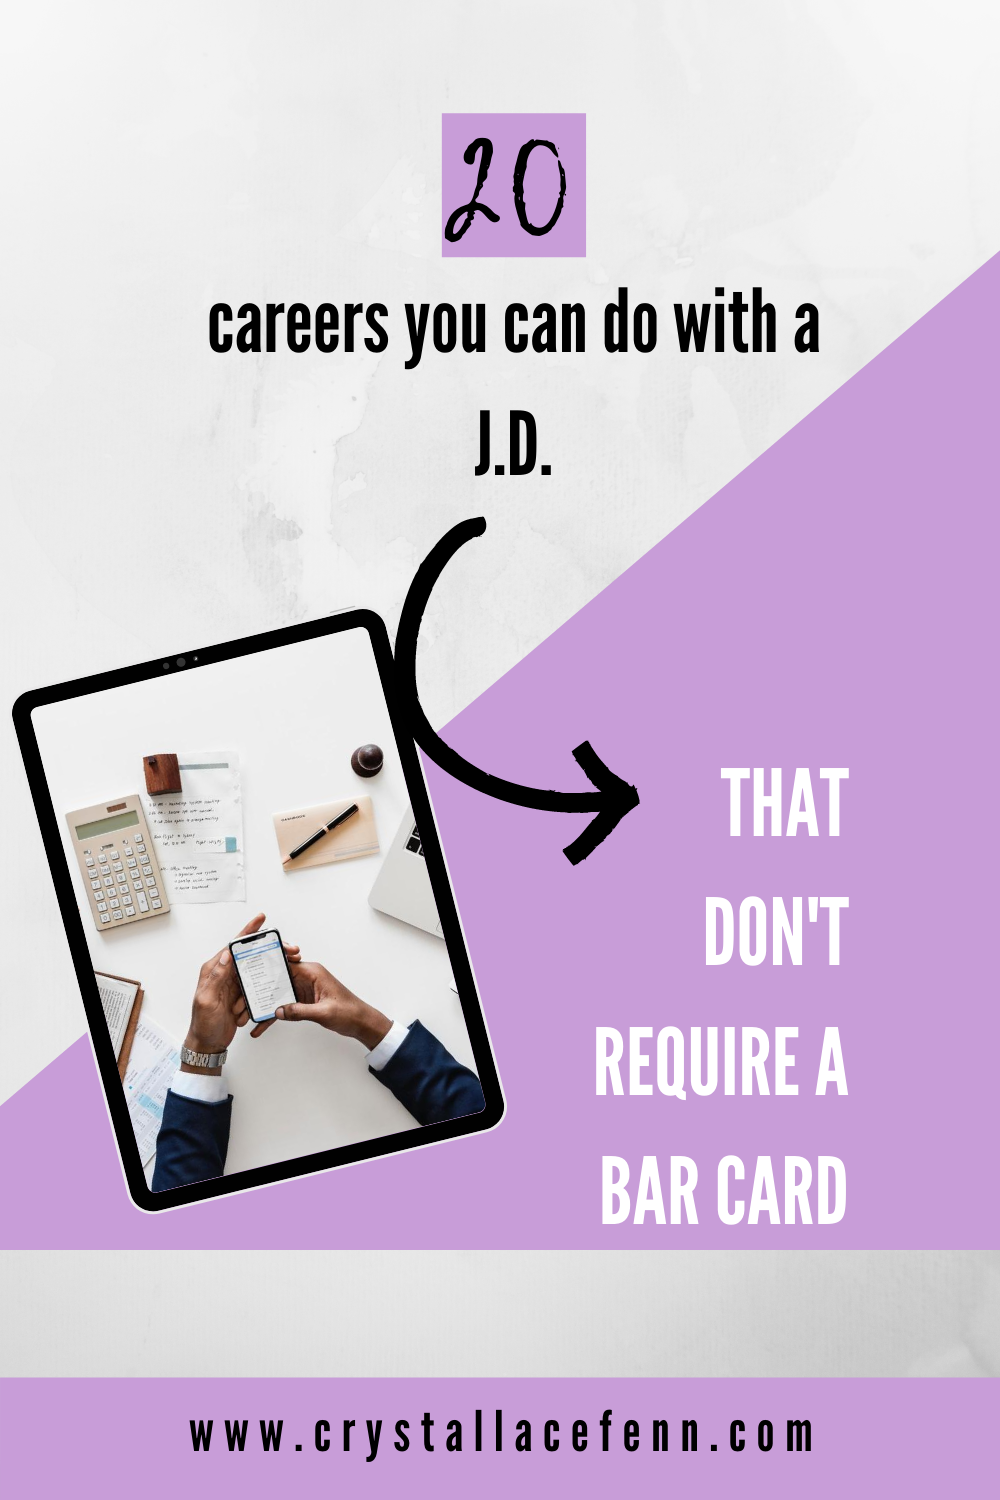 20 Careers You Can Do With a Law Degree…That Don't Require a Bar Card